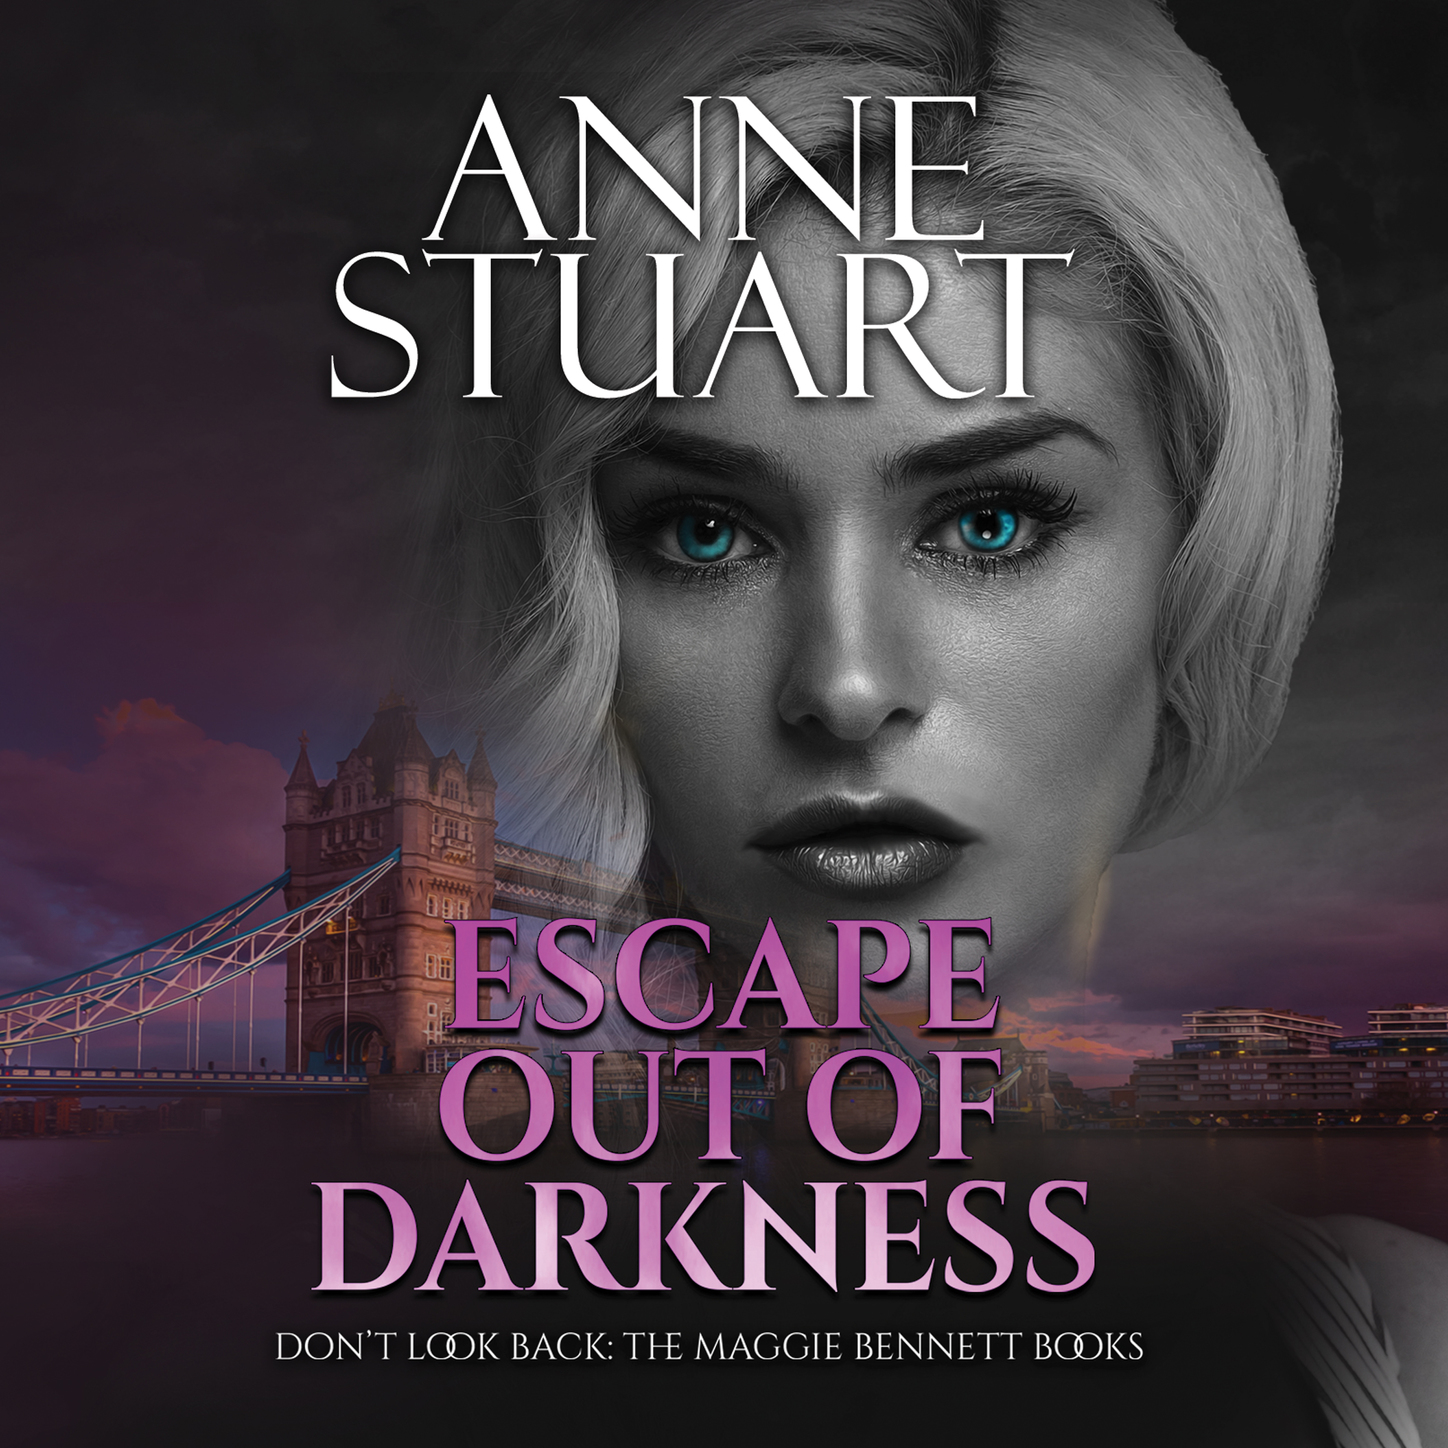 Anne Stuart Escape Out of Darkness - Don't Look Back: The Maggie Bennett Books 1 (Unabridged) anne mather whisper of darkness